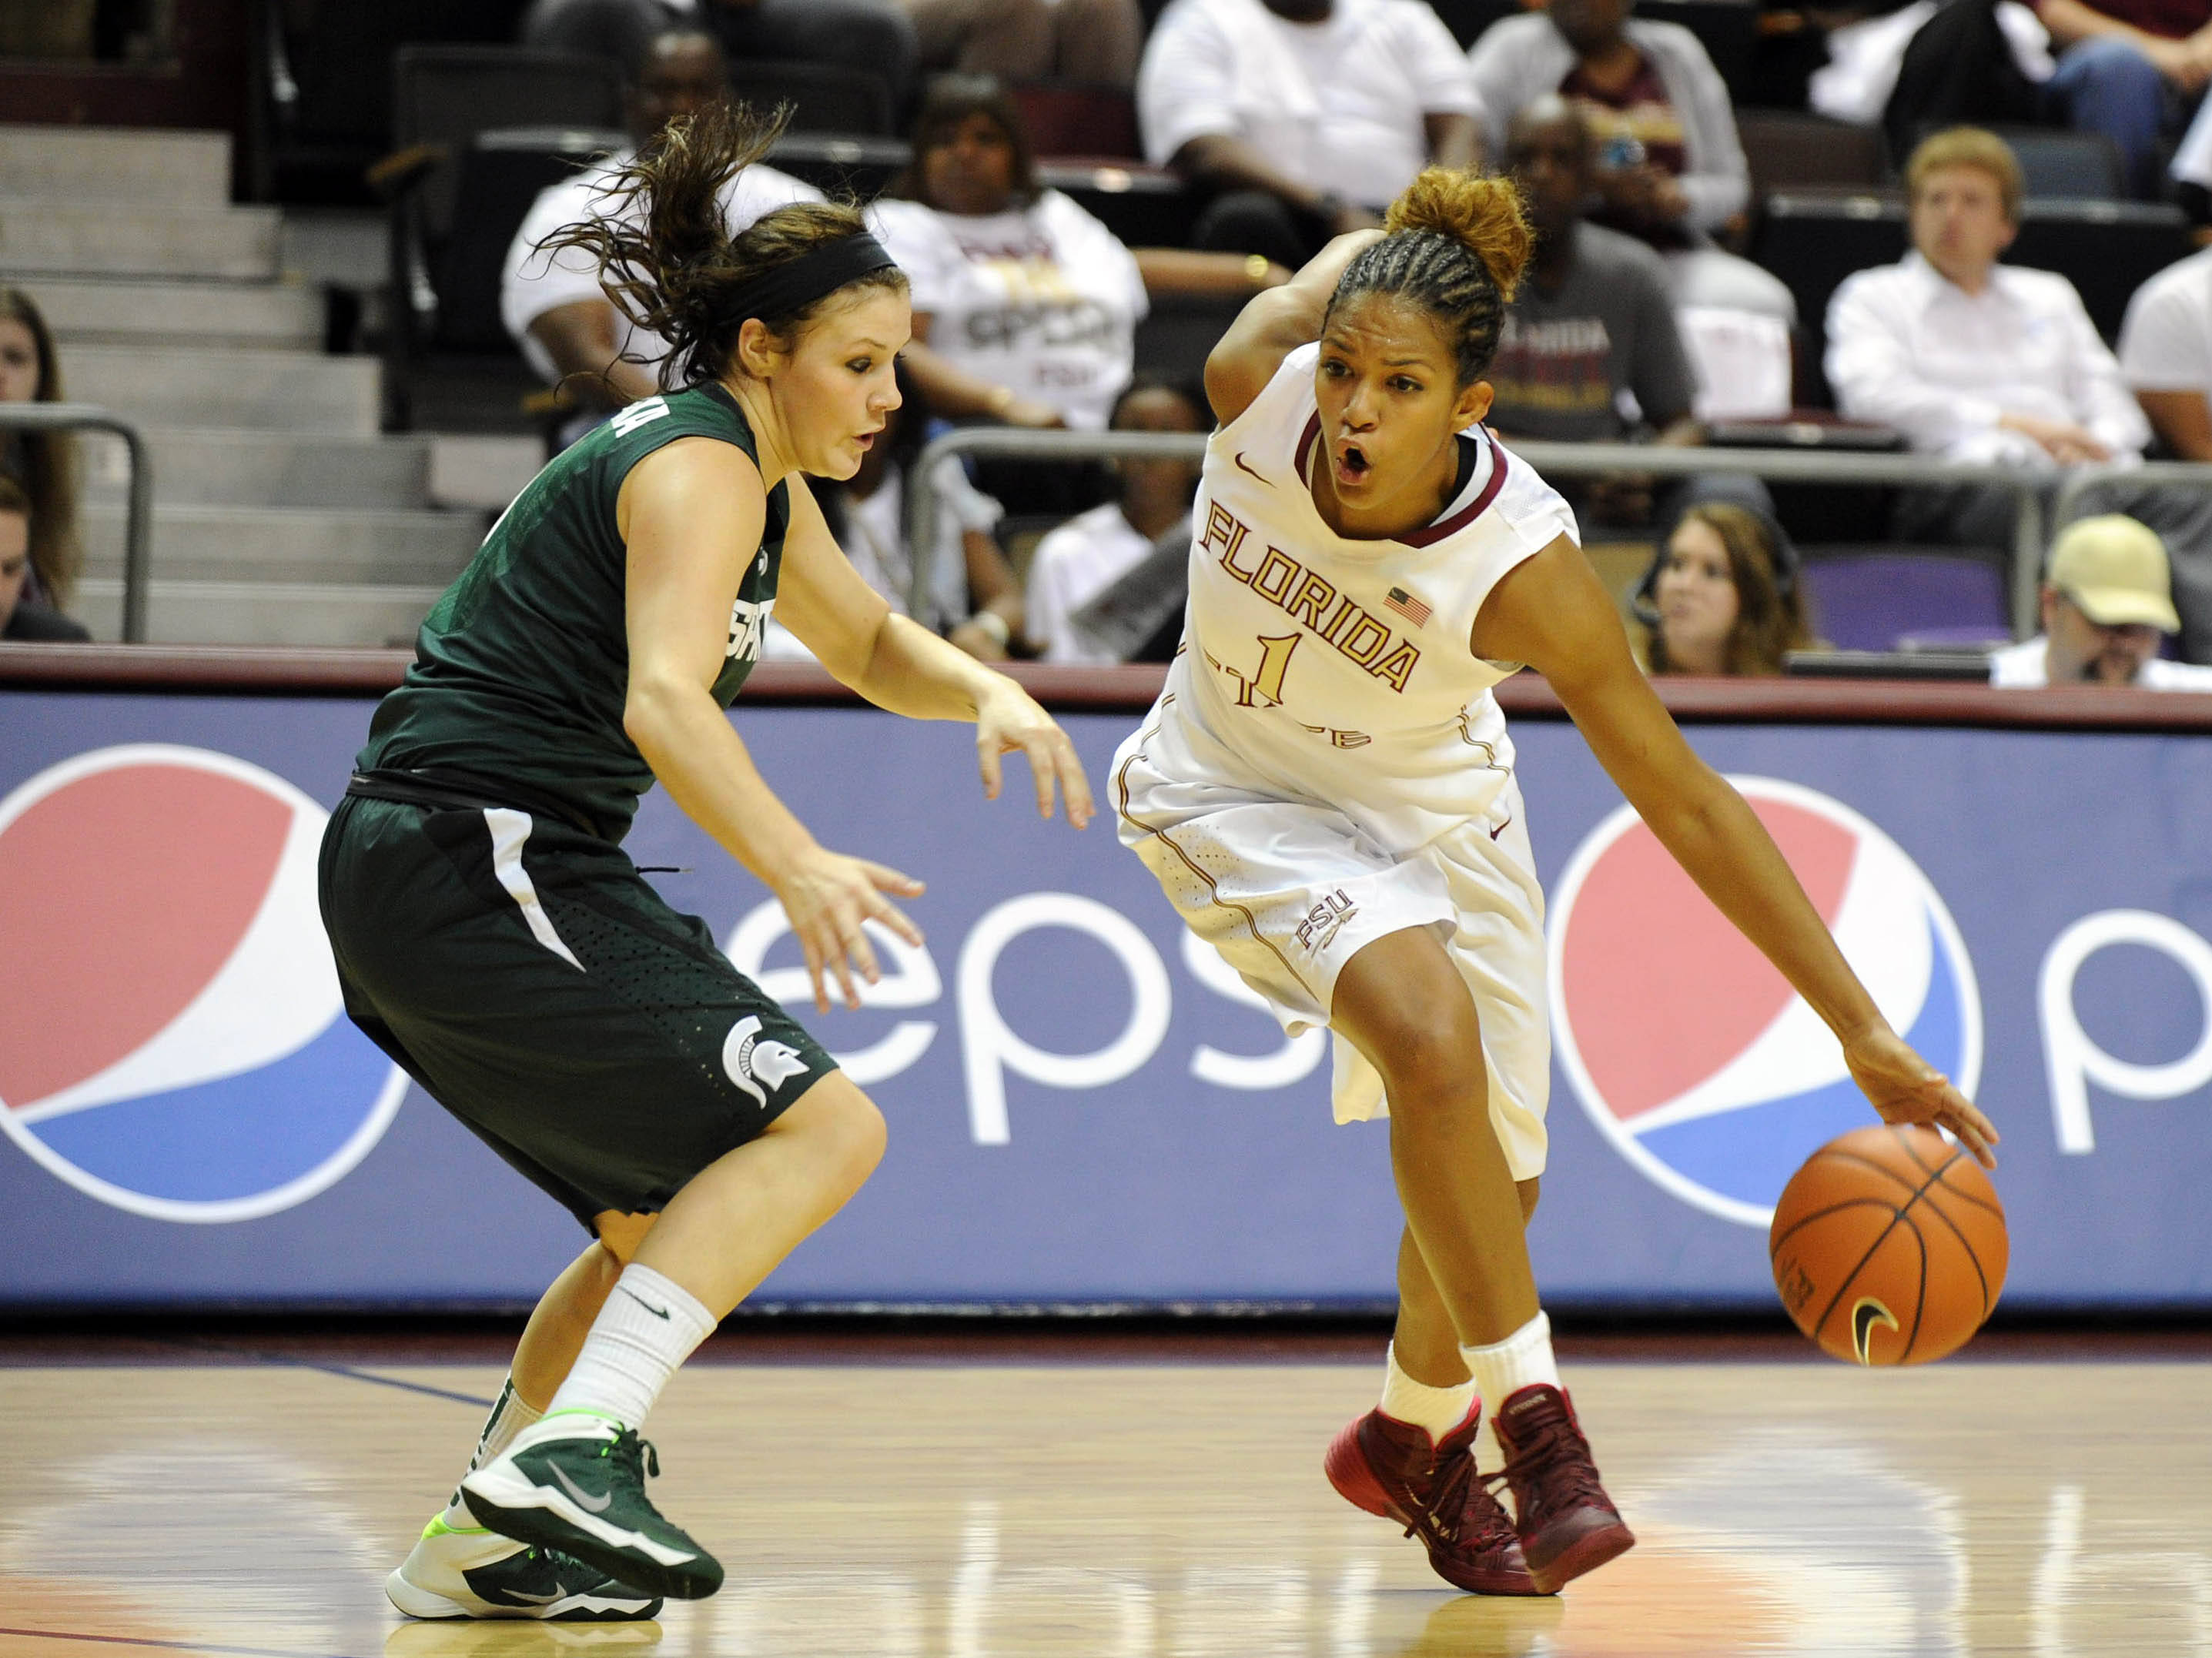 Dec 4, 2013; Tallahassee, FL, USA; Florida State Seminoles guard Morgan Jones (1) moves past Michigan State Spartans guard Tori Jankoska (1) during the game at the Donald L. Tucker Center (Tallahassee). Mandatory Credit: Melina Vastola-USA TODAY Sports